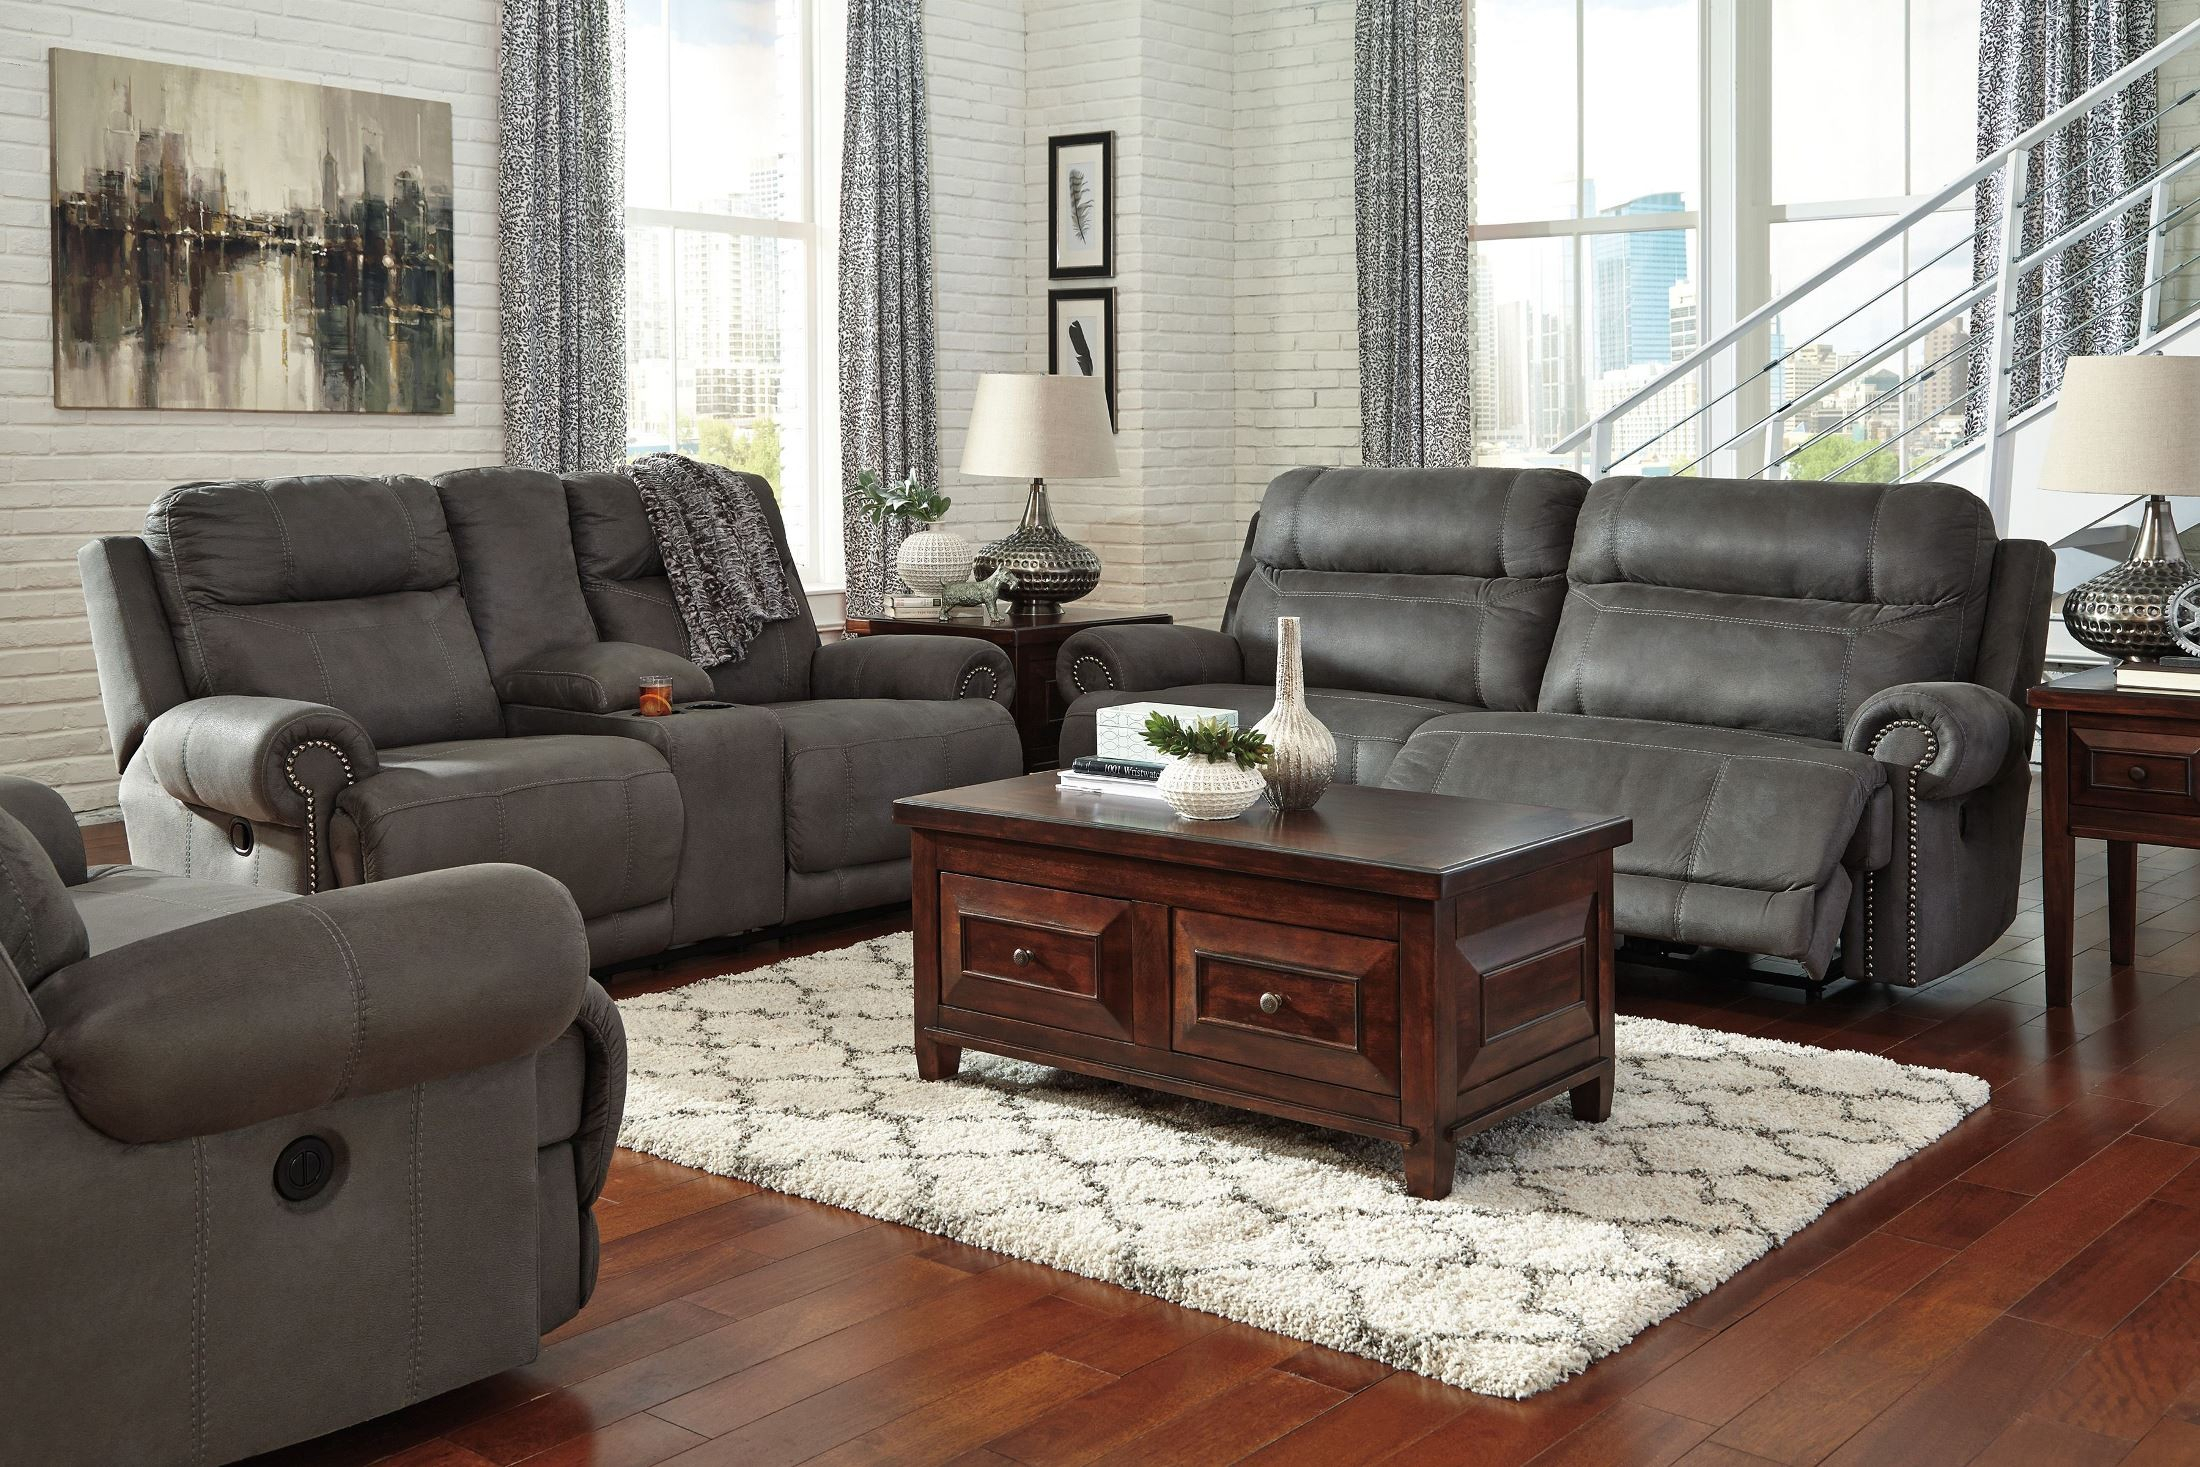 Reclining Living Room Sets and plus sectional couch with chaise and plus living room furniture sets clearance and plus cheap living room sets under 300